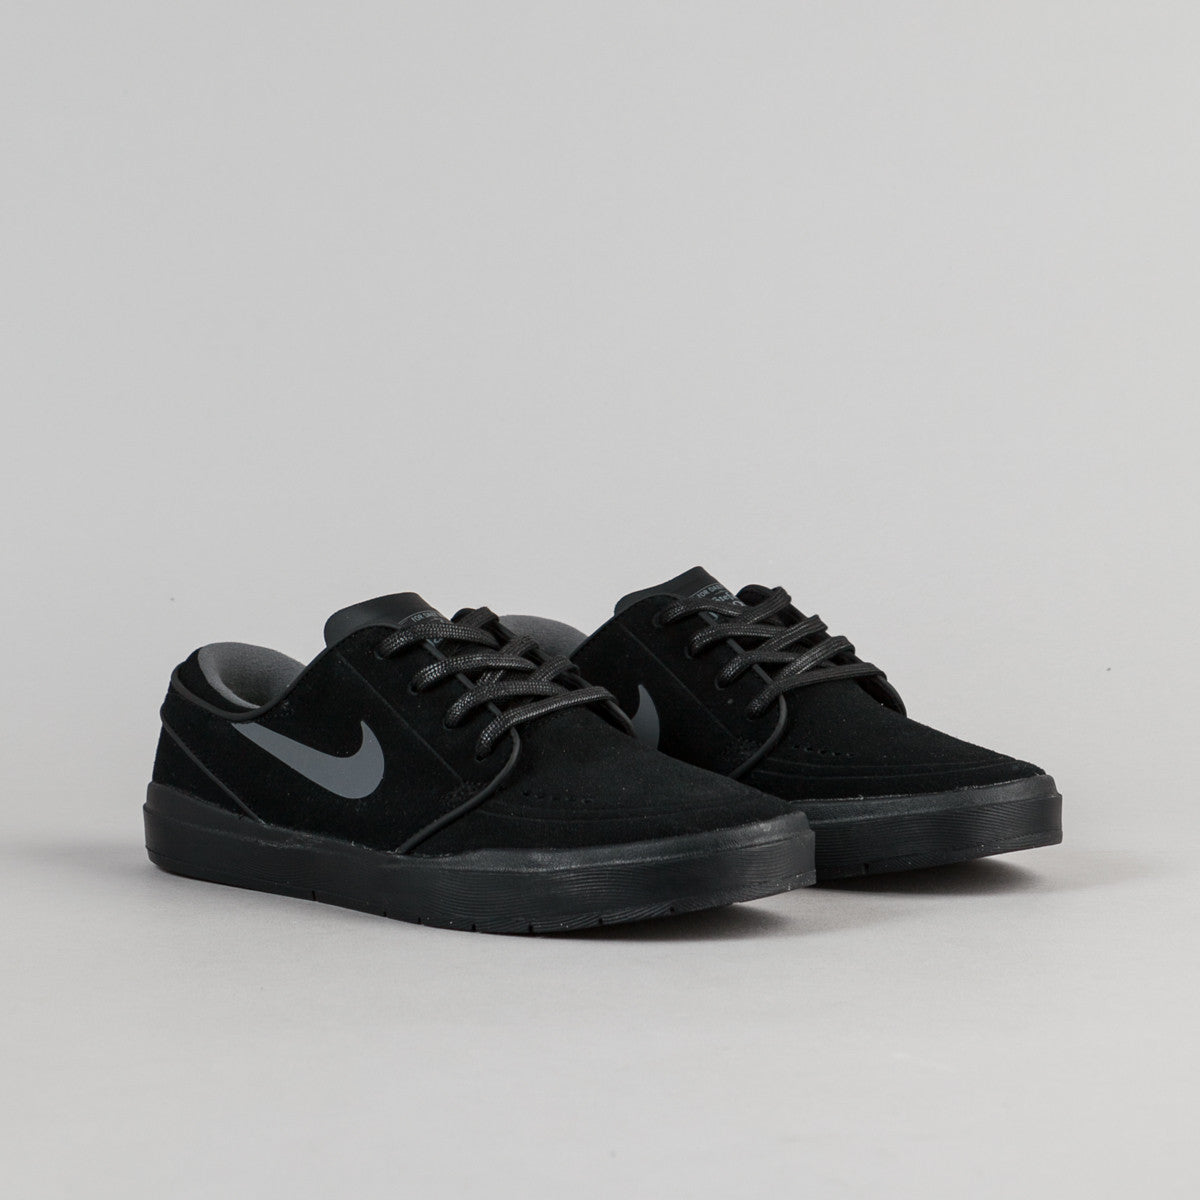 Nike SB Stefan Janoski Hyperfeel Shoes - Black / Black - Anthracite - Black